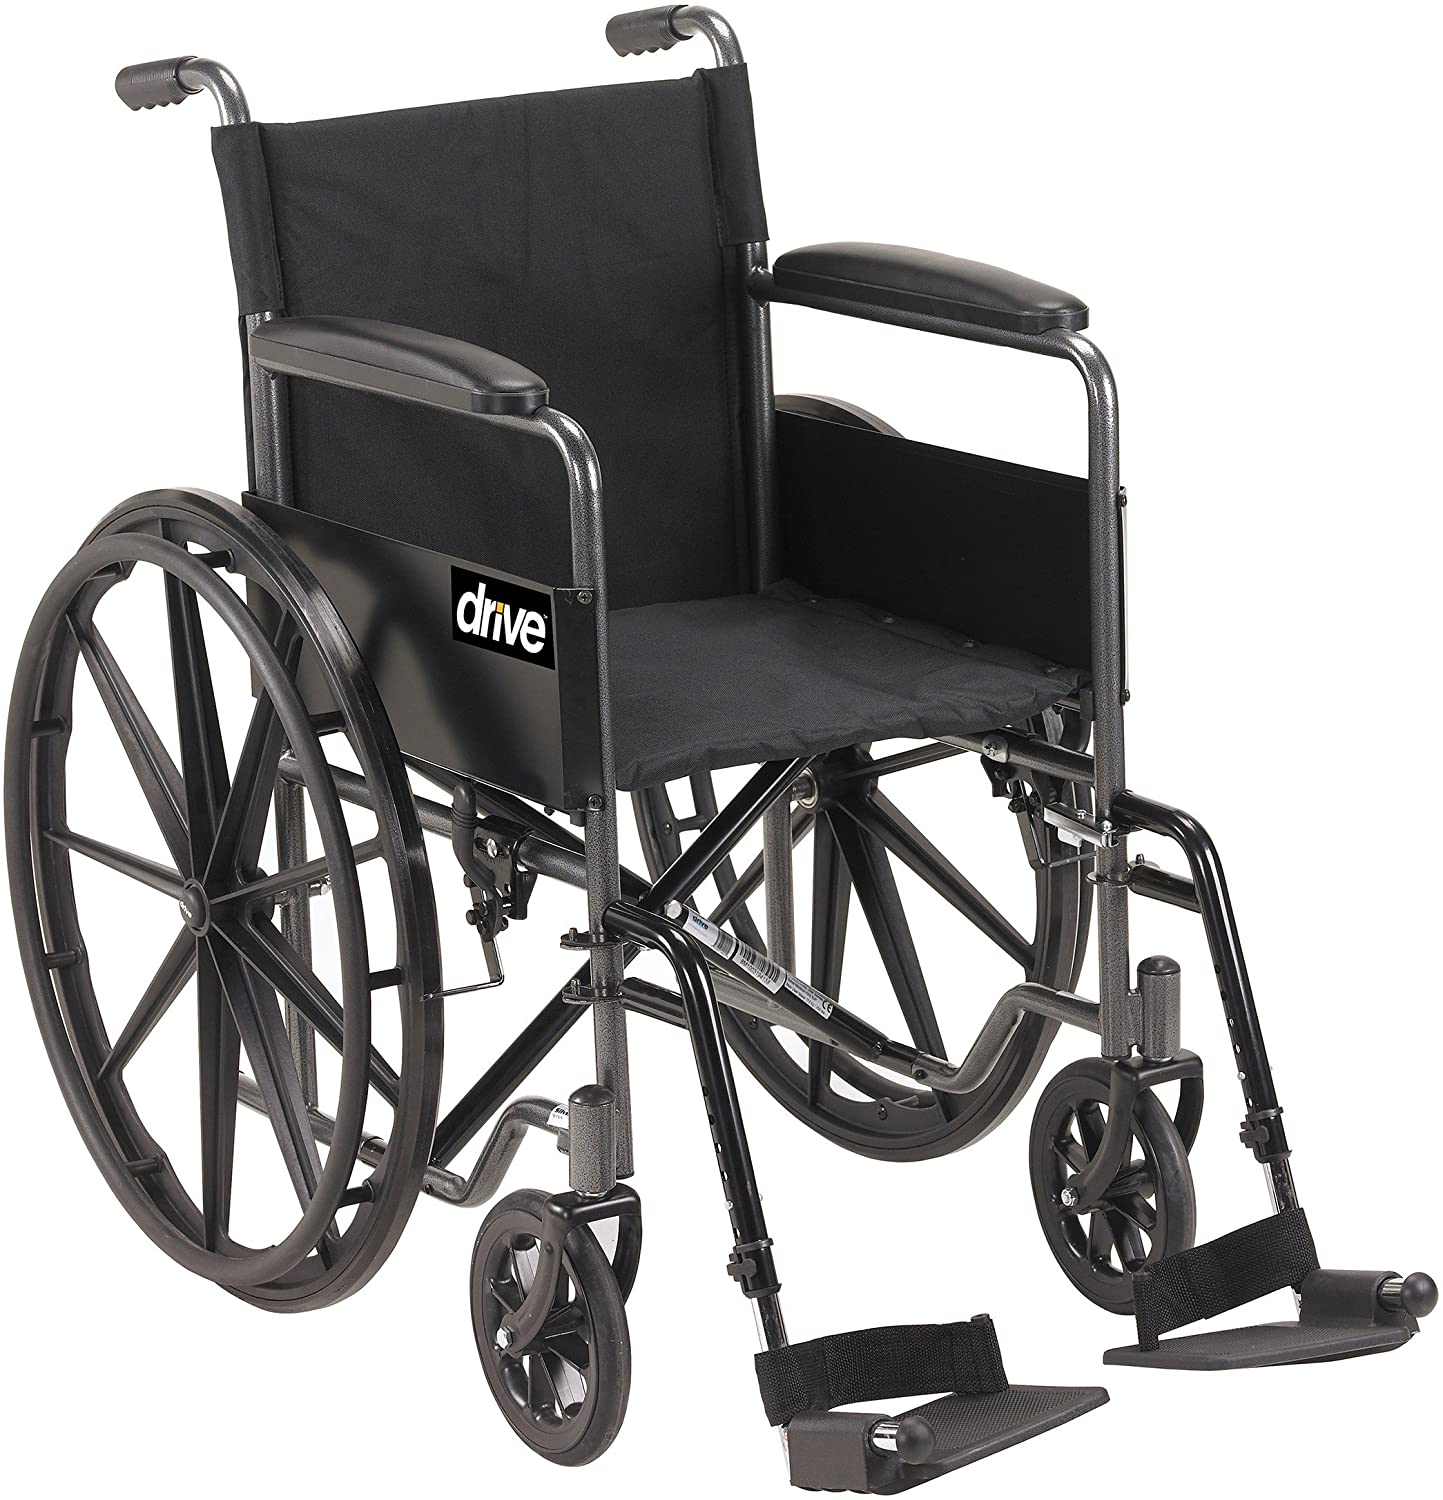 B001HOI7AS Drive Medical Silver Sport 1 Wheelchair with Full Arms and Swing Away Removable Footrest, Black 914e6mv6NvL.SL1500_